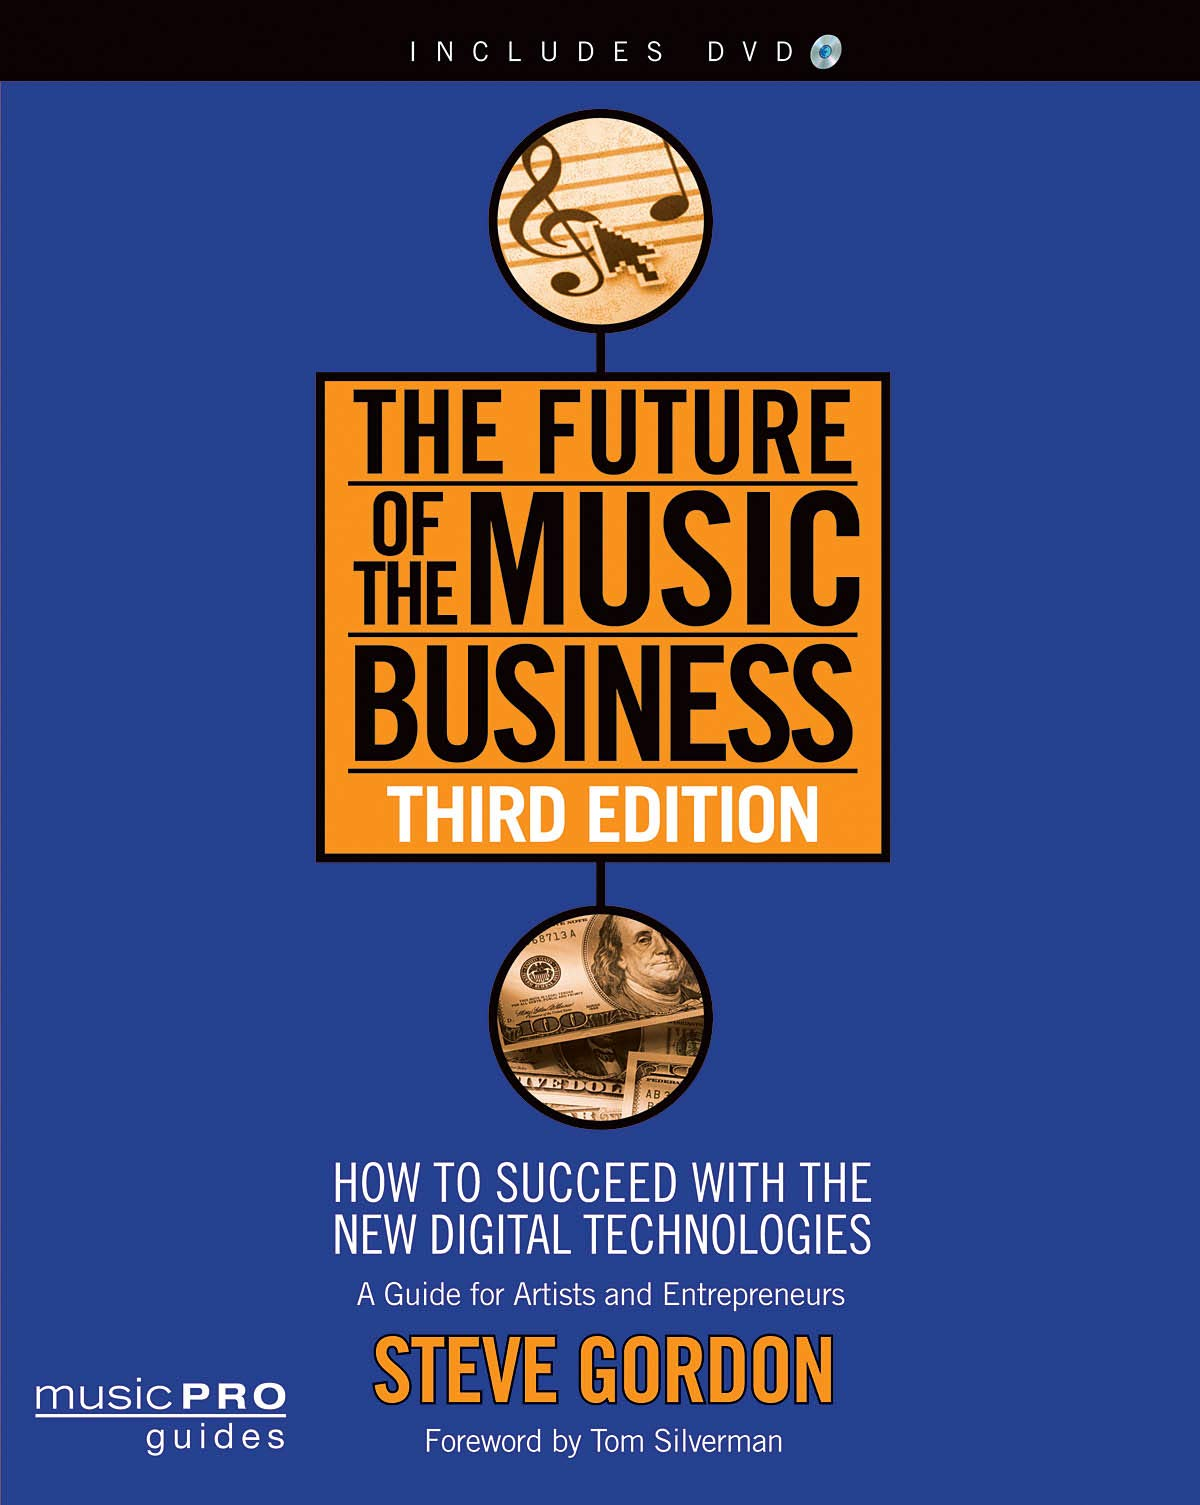 The Future of the Music Business: How to Succeed with the New